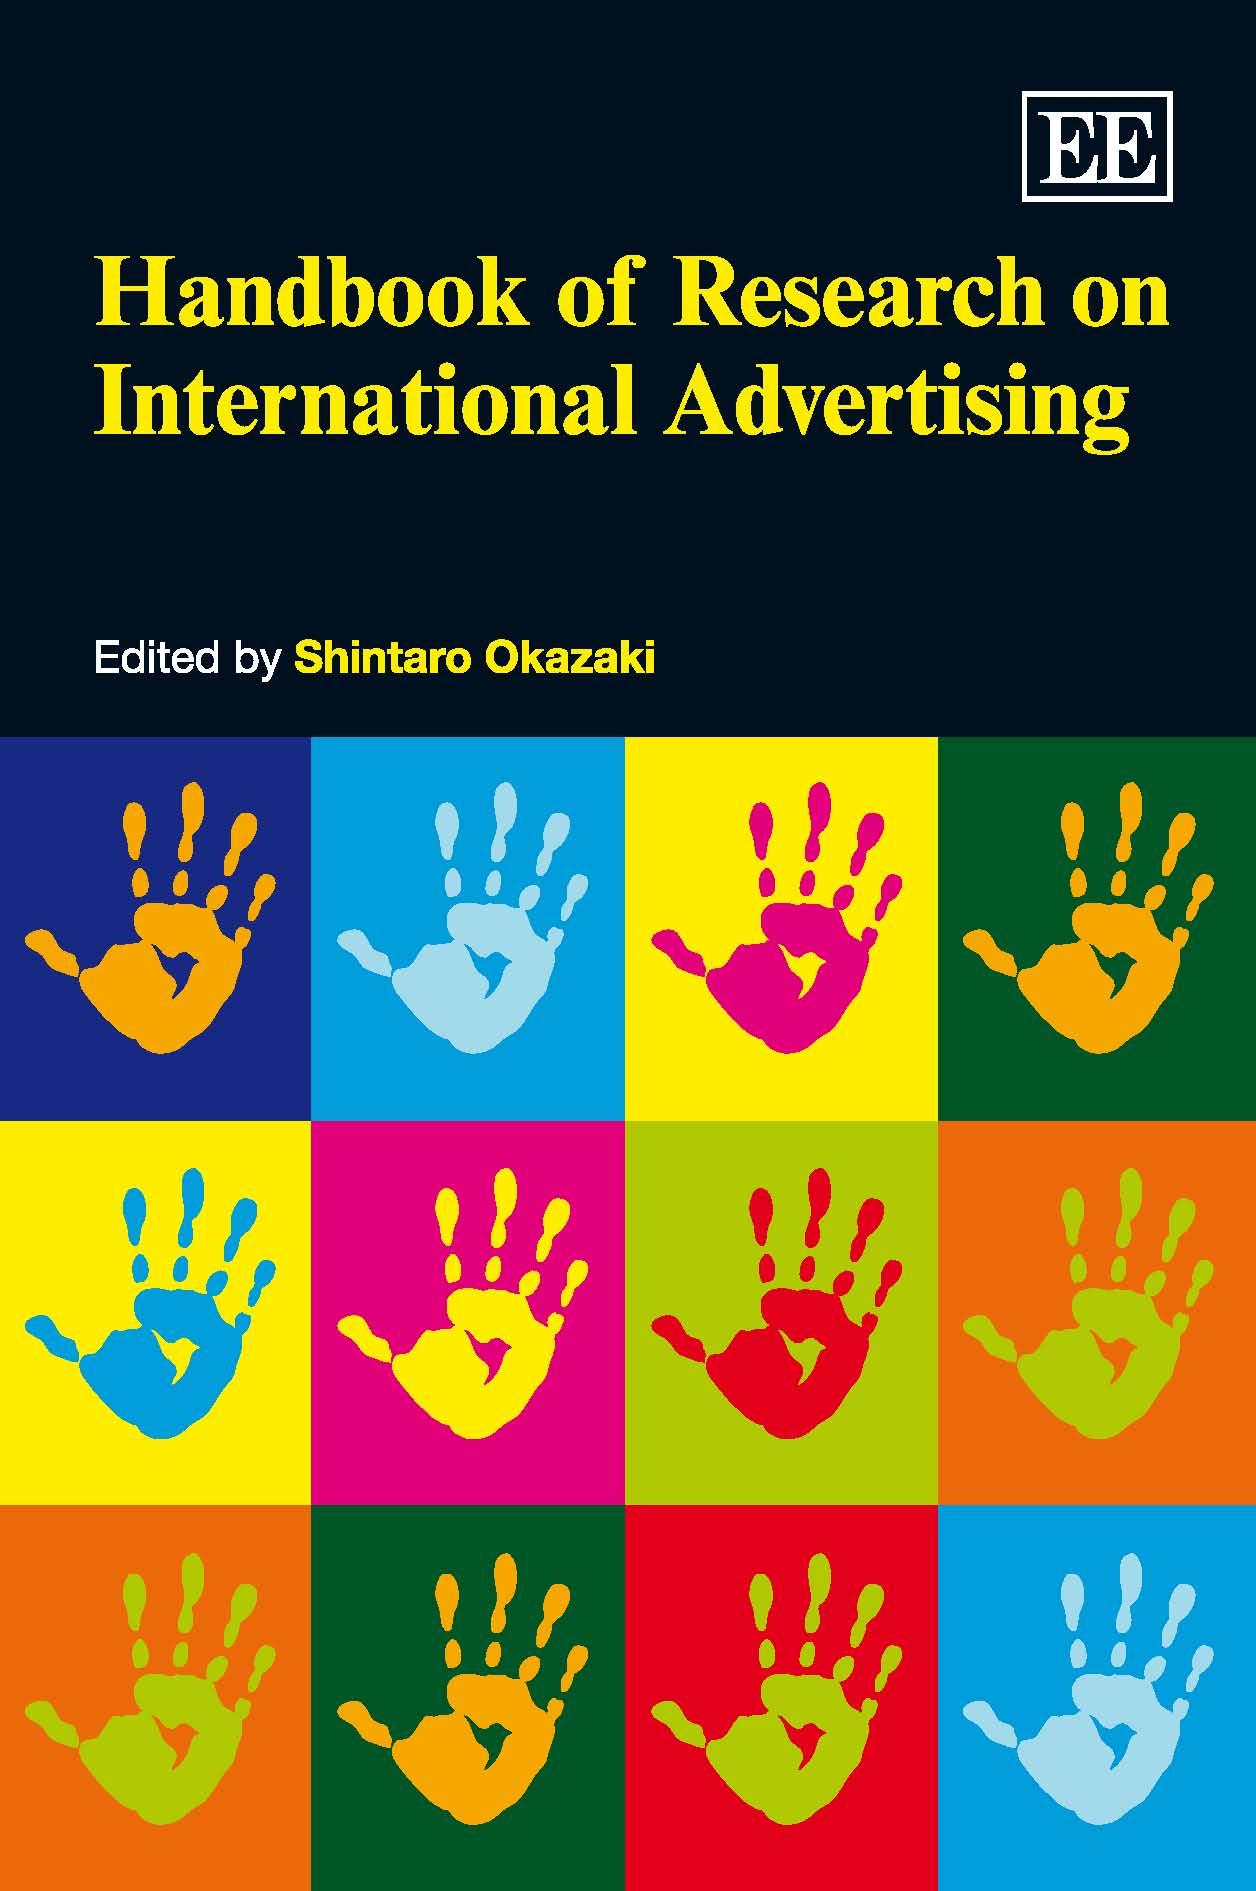 Handbook of Research on International Advertising